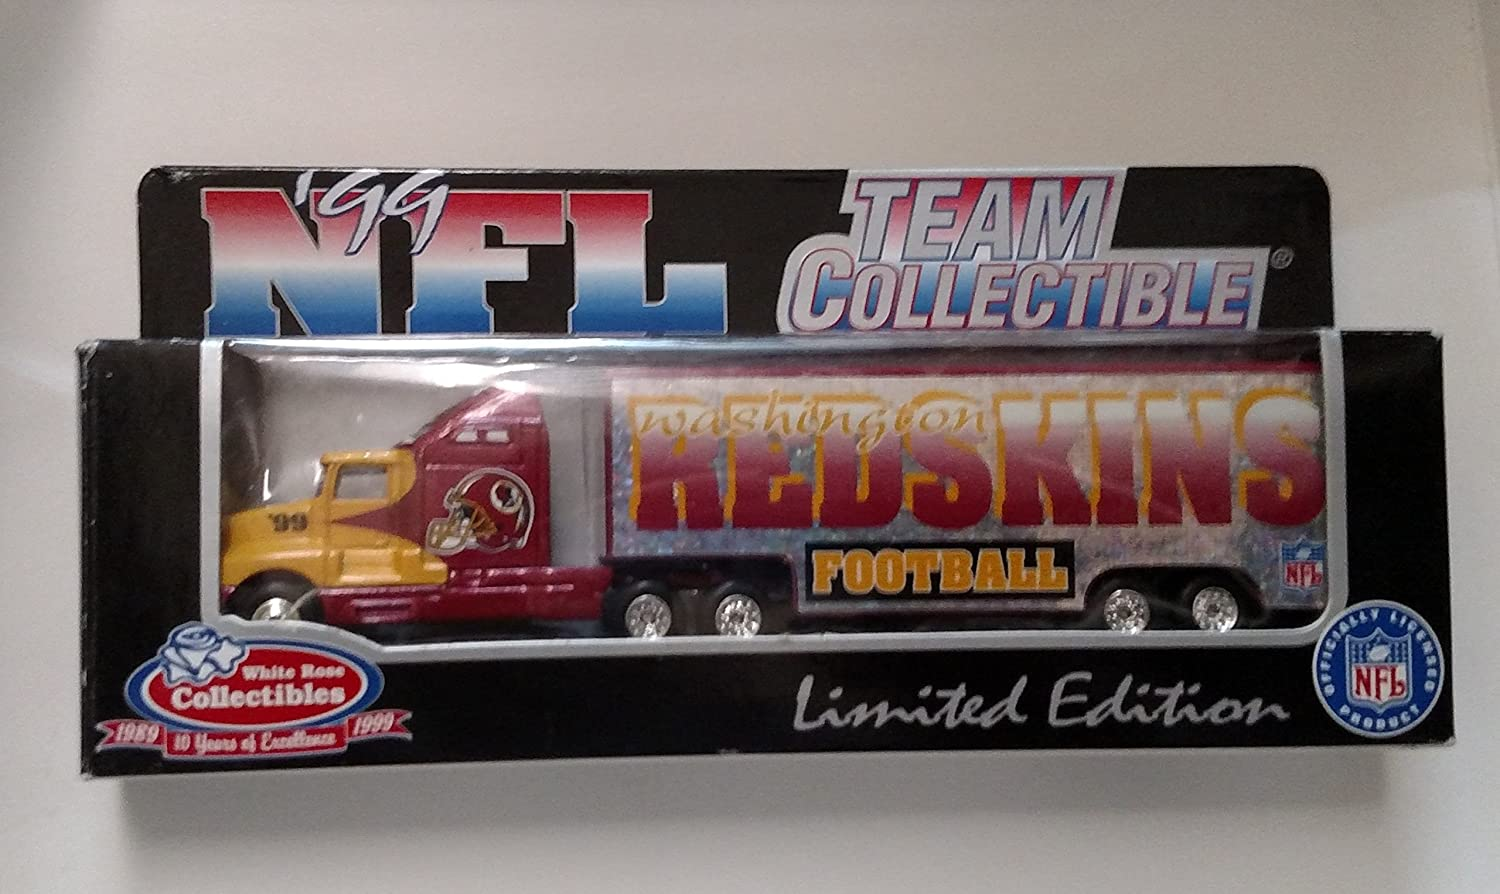 Washington Redskins 1999 NFL Tractor Trailer 1:80 Scale White Rose Collectibles